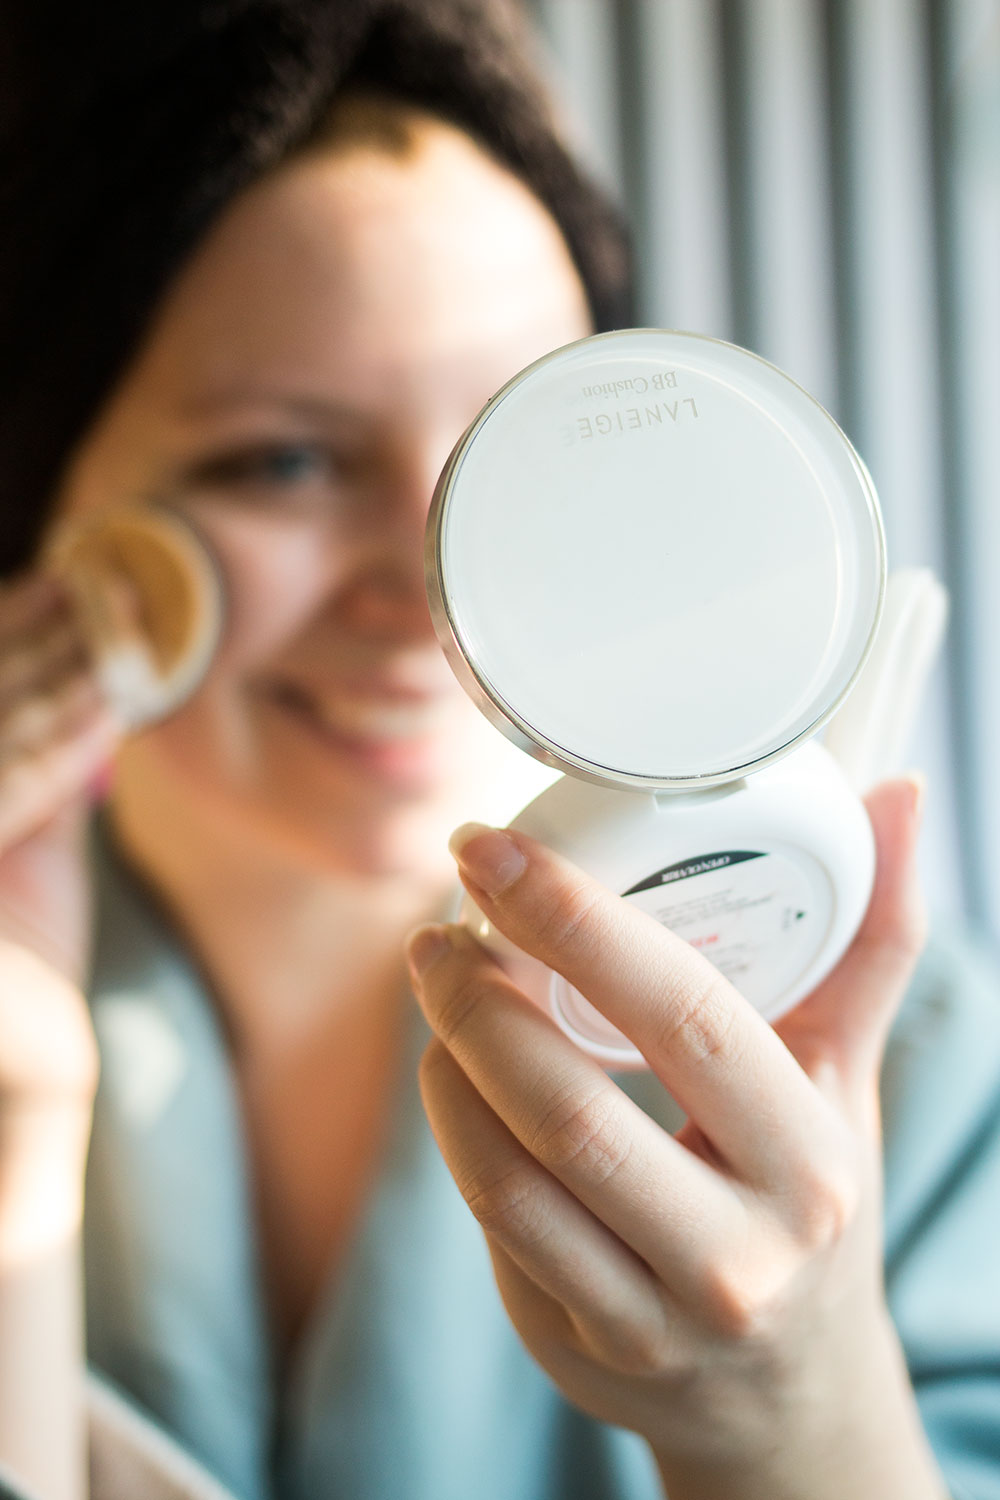 Glowy Skincare Tips Laneige BB Cushion in Fair Review // Hello Rigby Seattle Beauty Blog